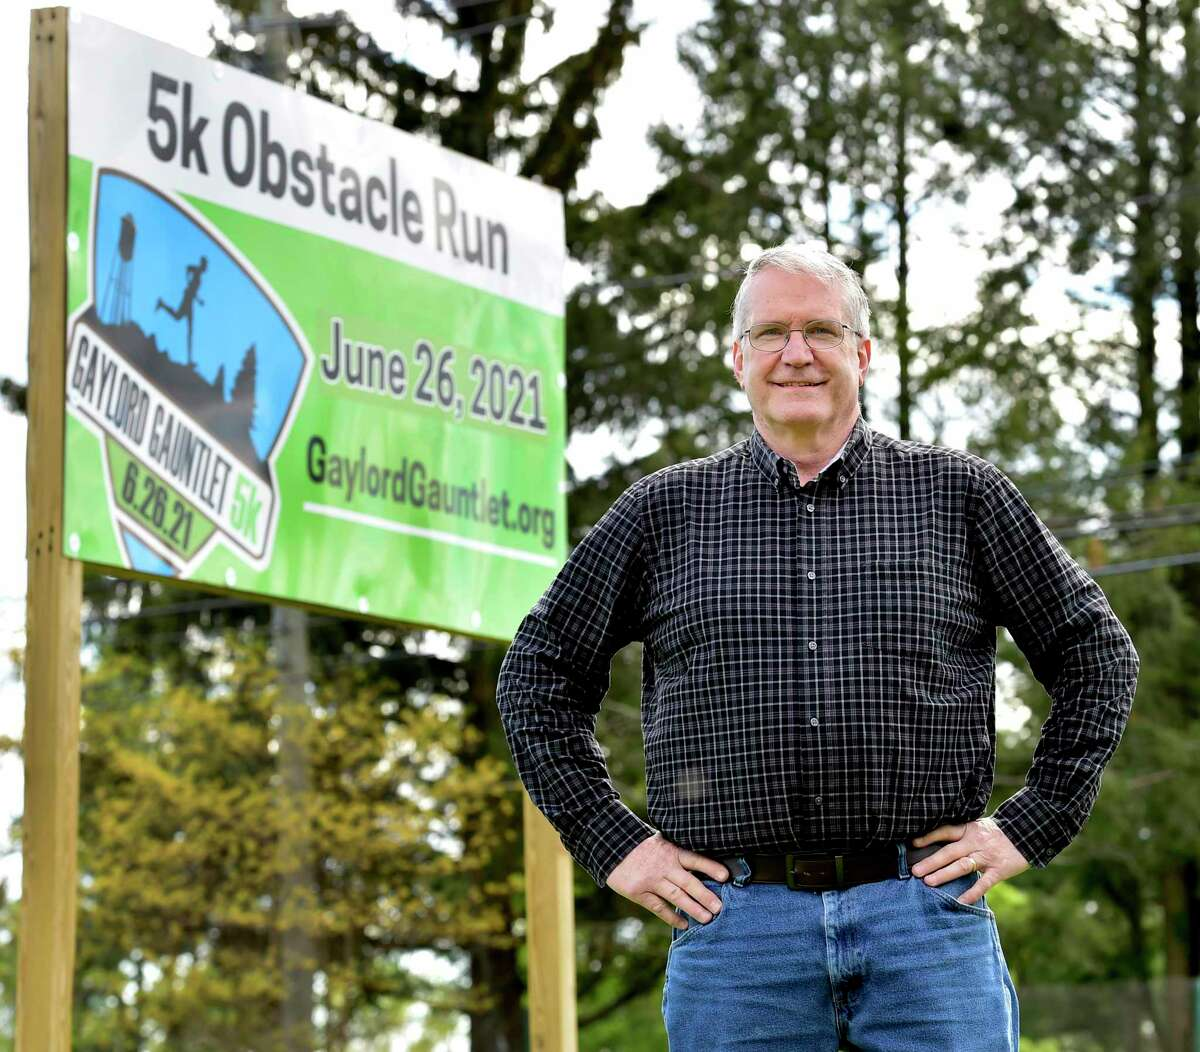 Greg Whitehouse, 61, will run the Gaylord Guantlet 5K & Obstacle Race in Wallingford, after recovering from COVID-19 and then suffering a paralyzing disorder.